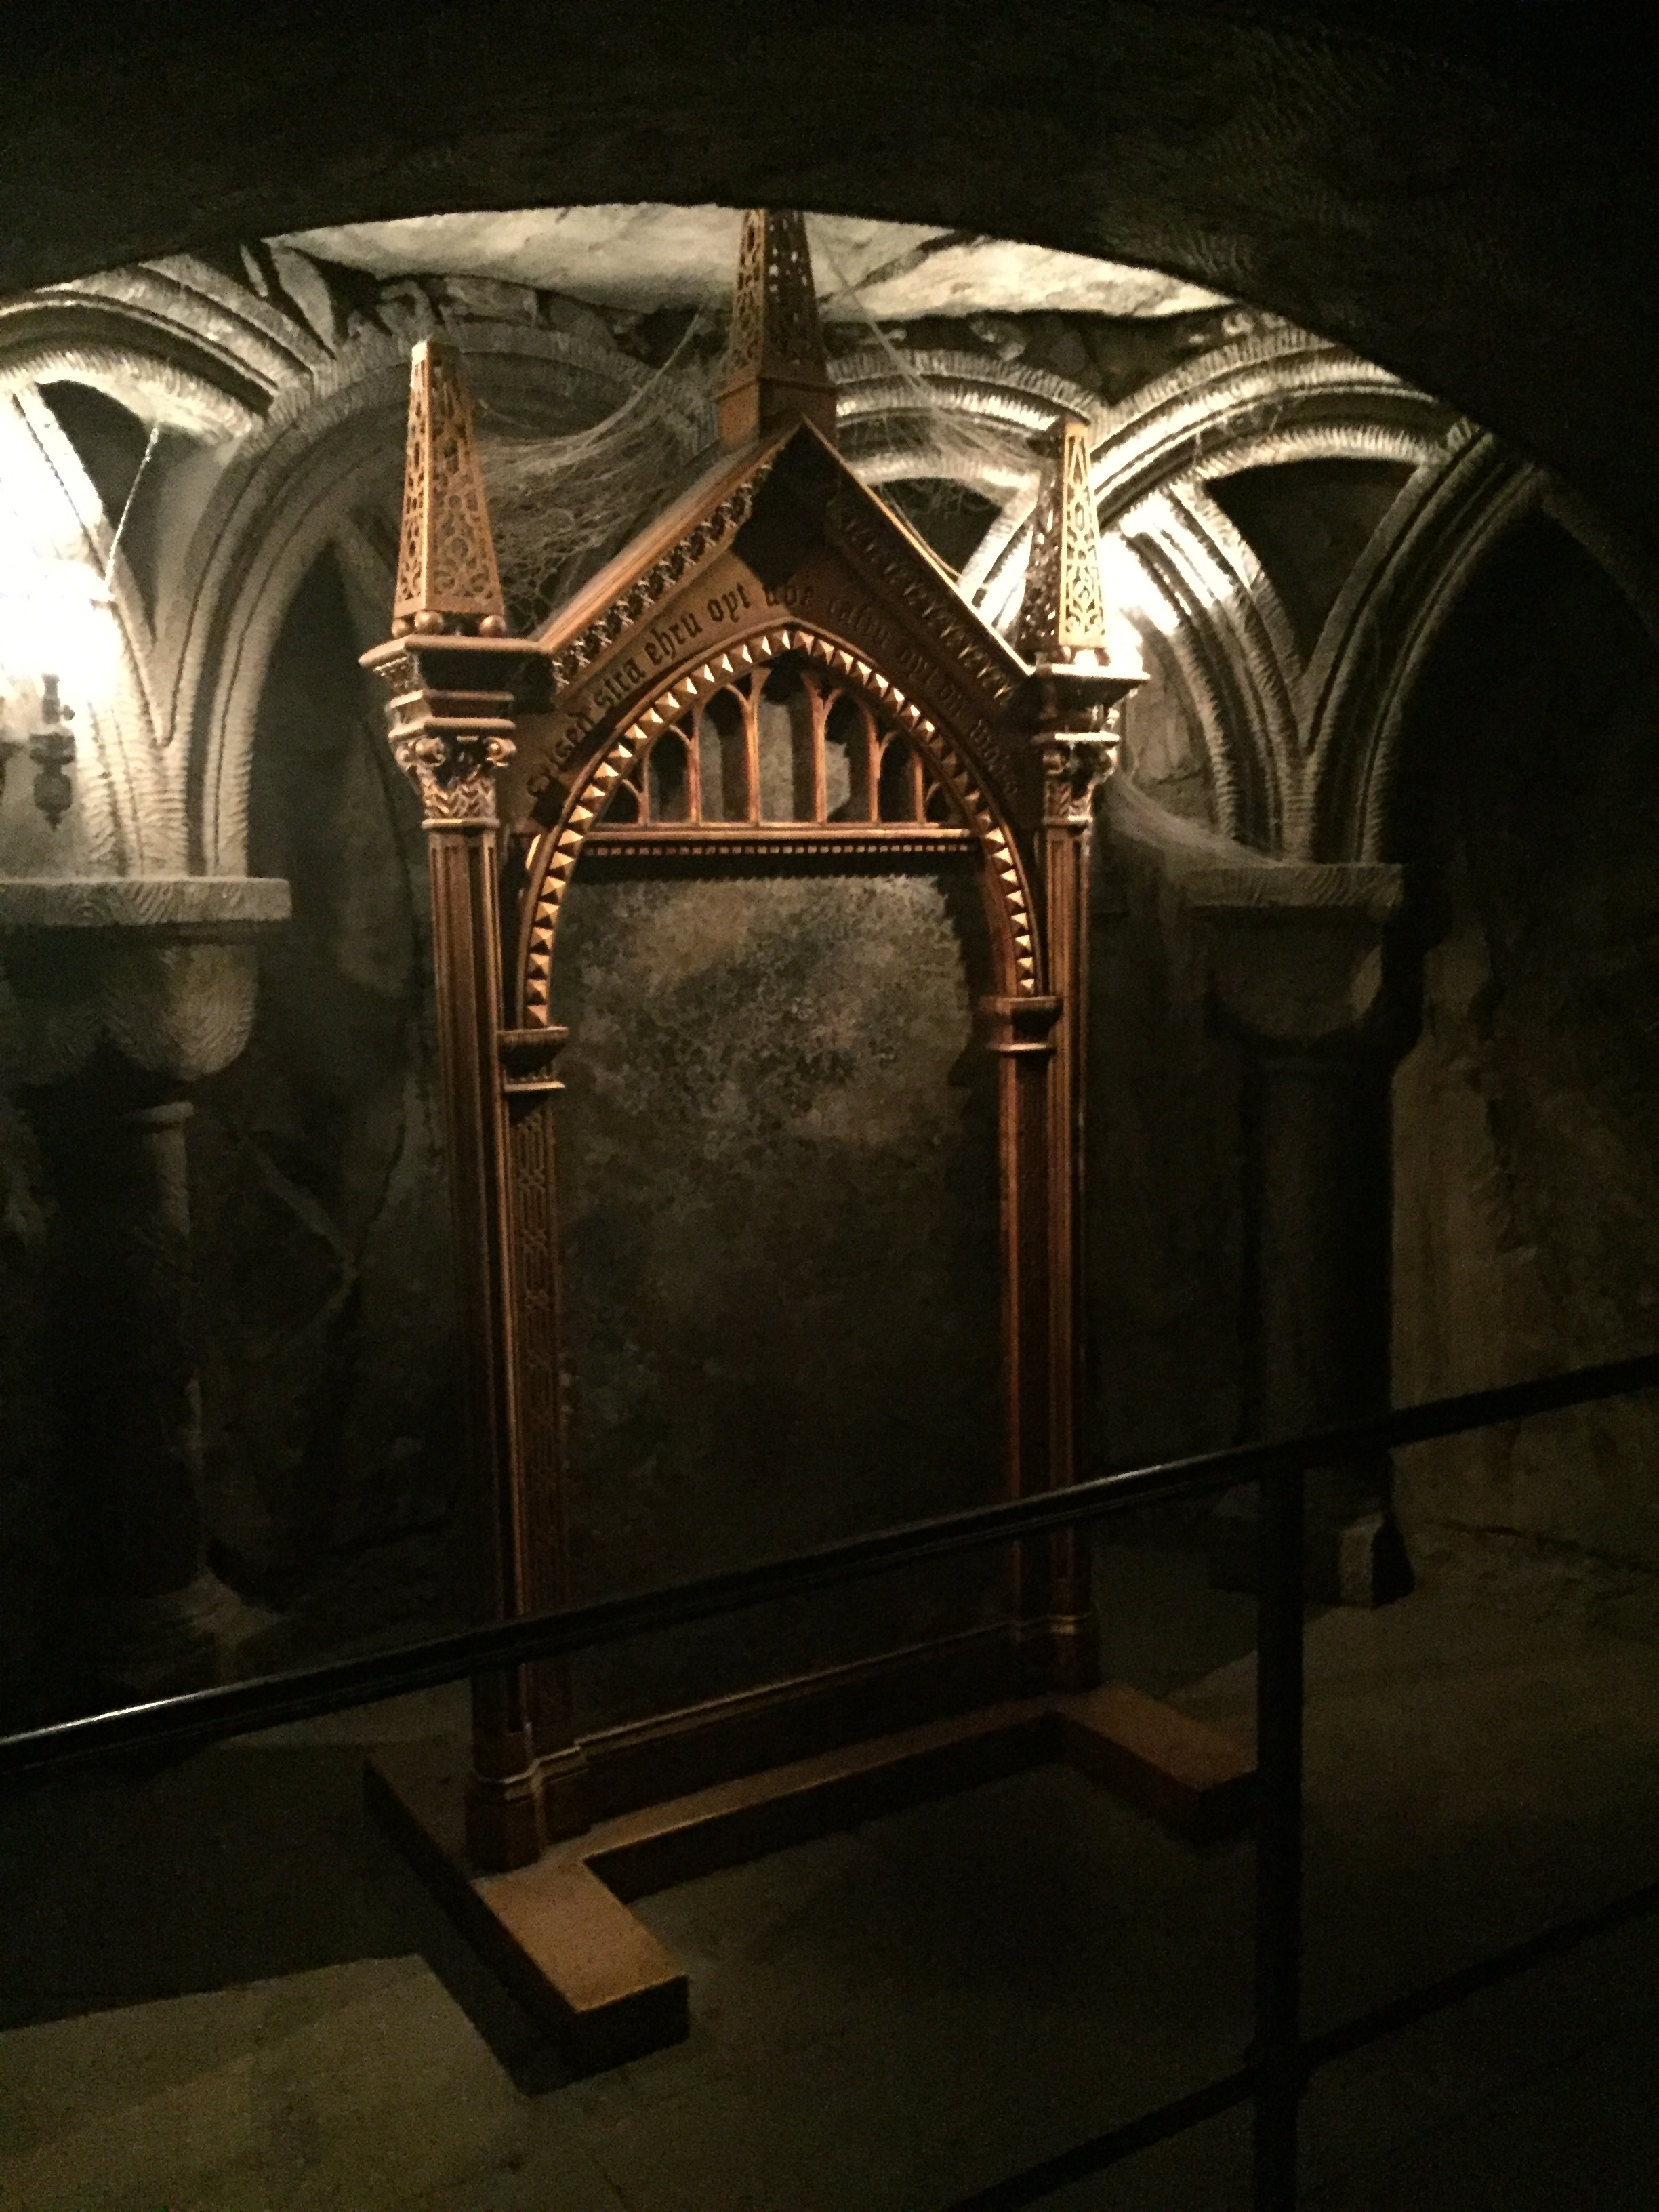 [image description: The Mirror of Erised. It's a floor length mirror in an ornate gold stand. There are cobwebs at the top.]